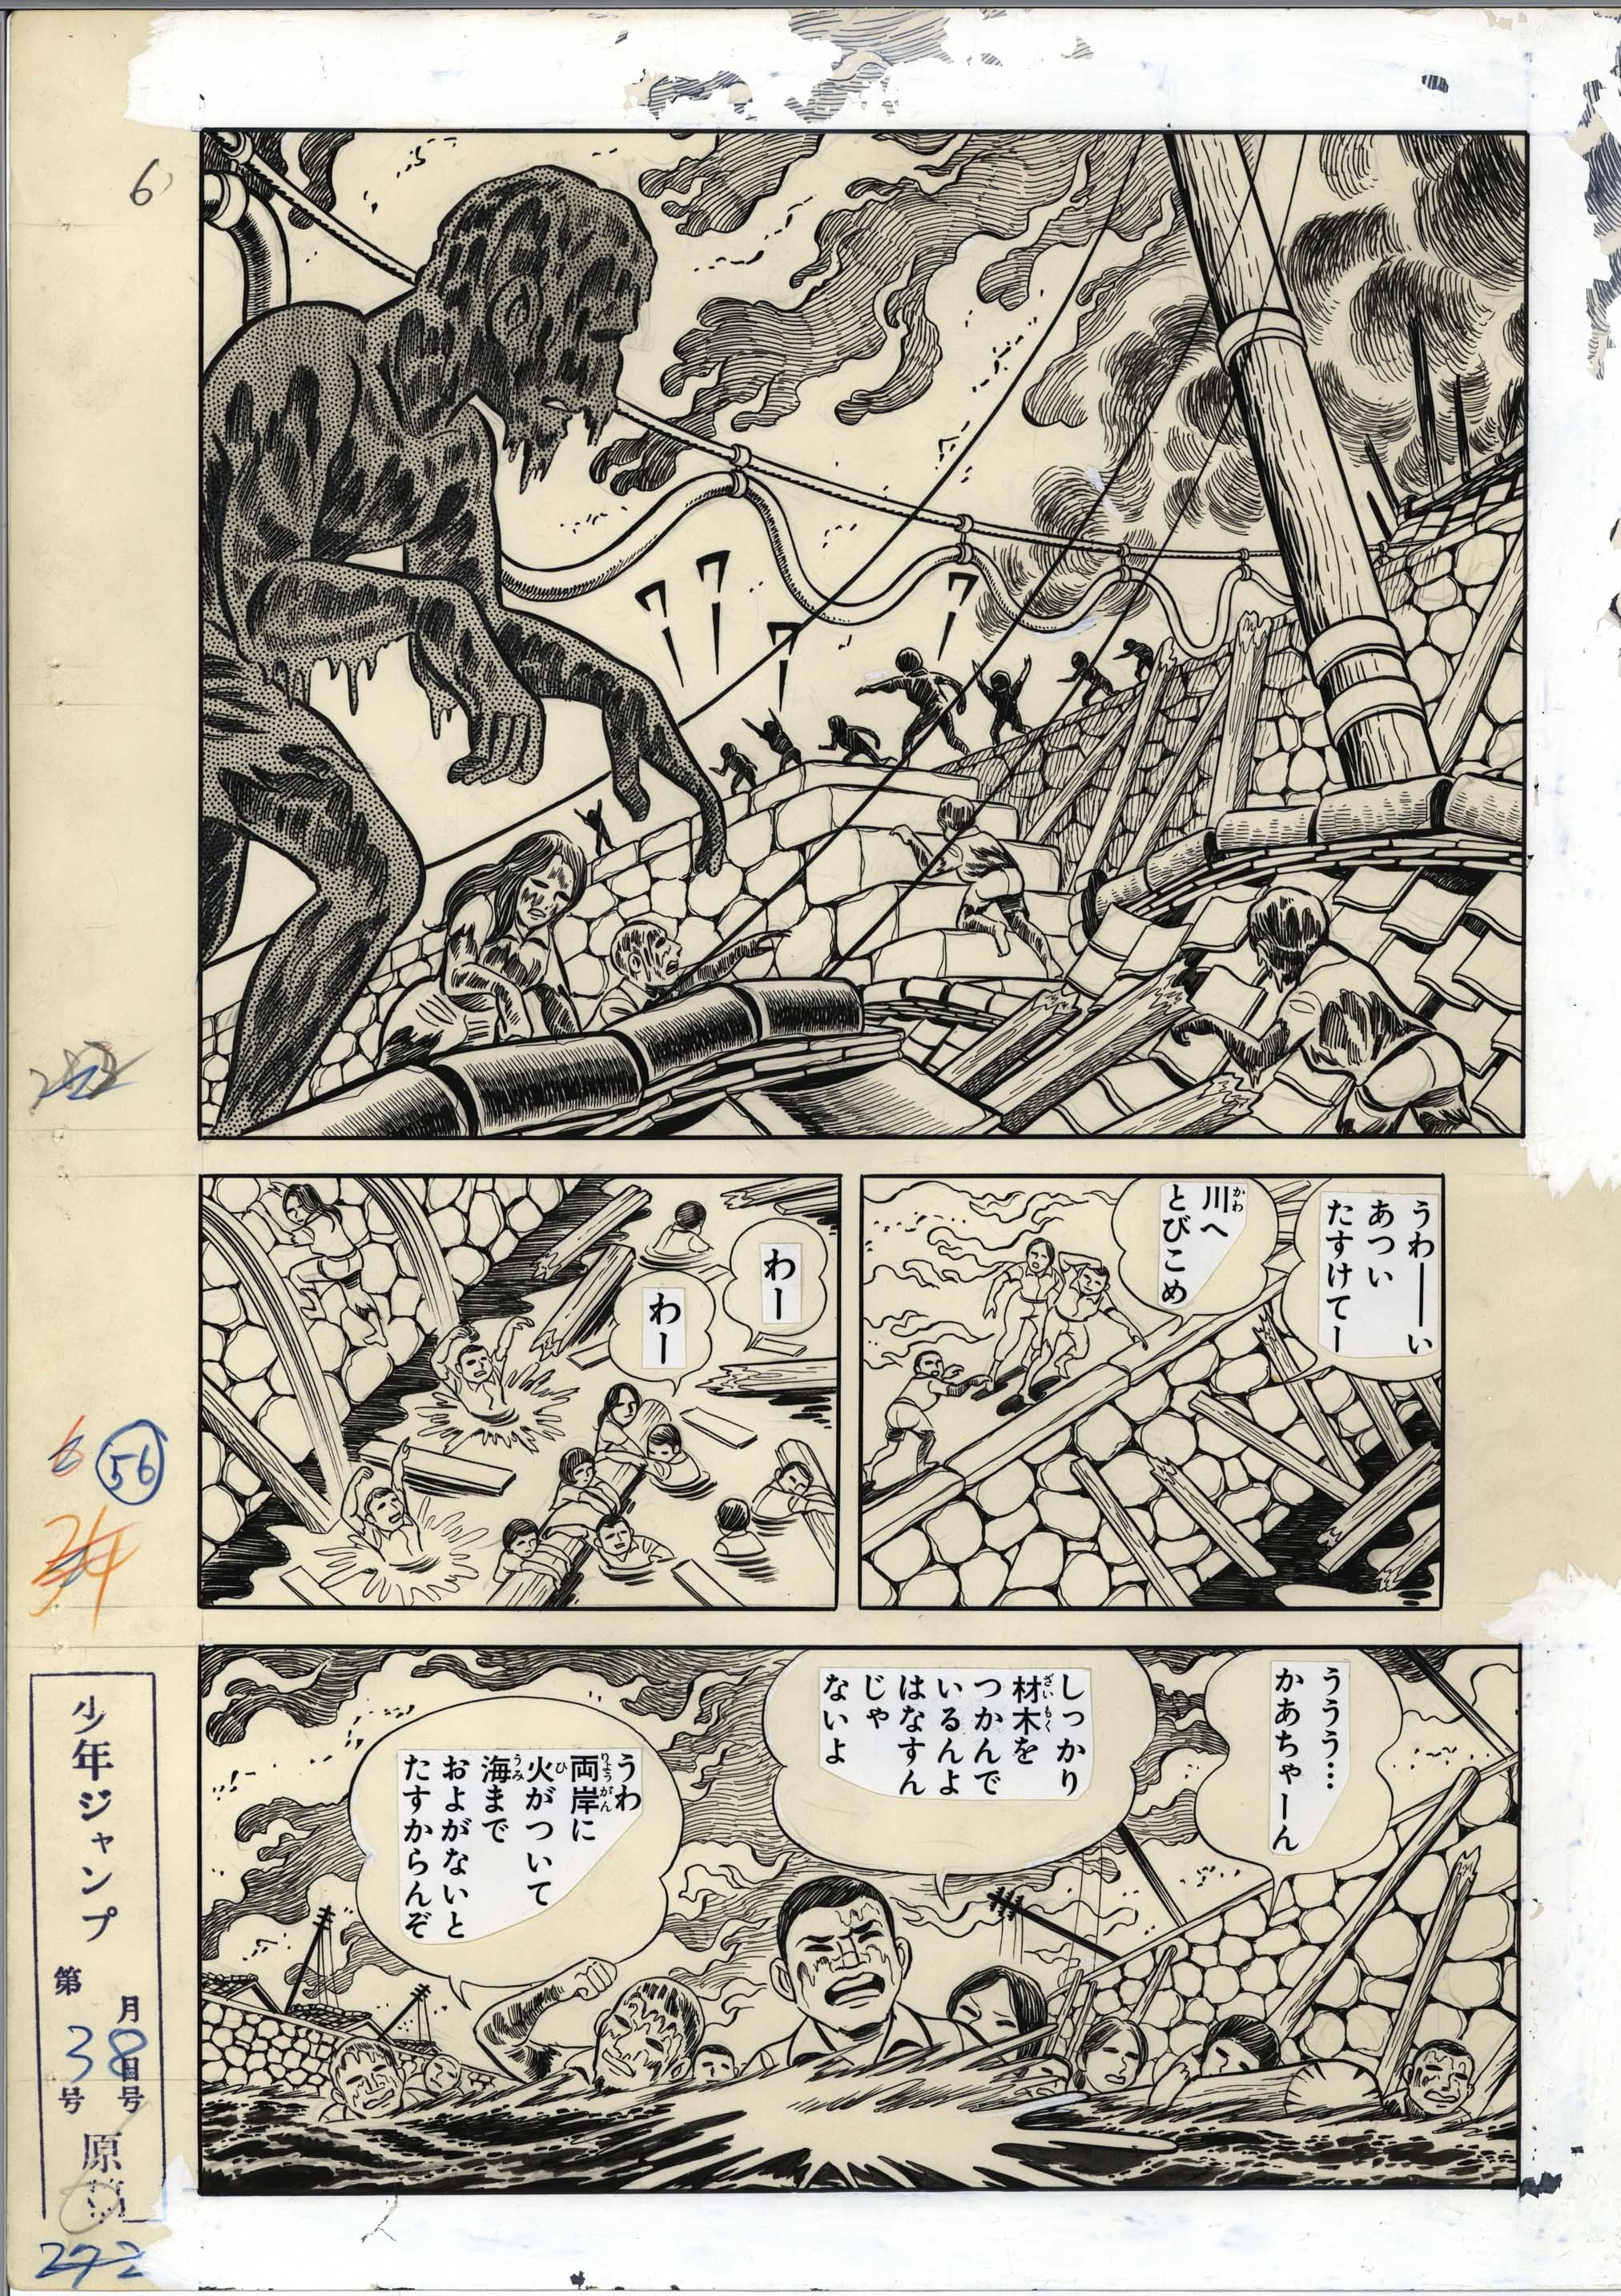 This Original Manga Art Shows What It Was Like After U.S. Dropped Atomic Bomb On Hiroshima